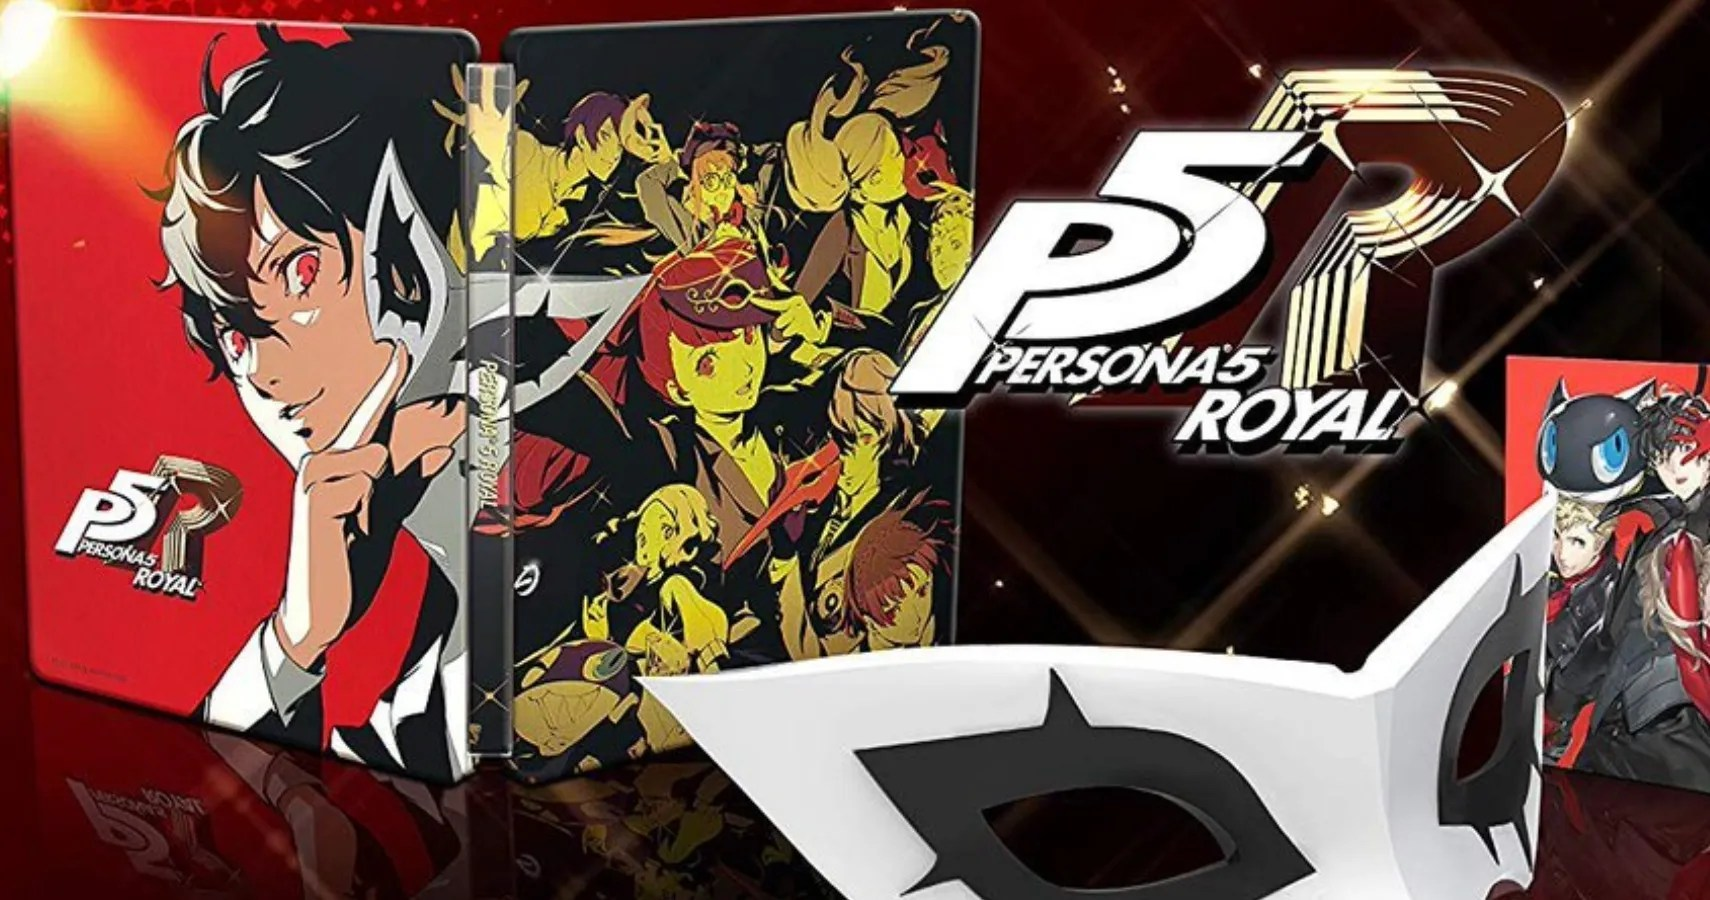 persona 5 royal was the highest ranked